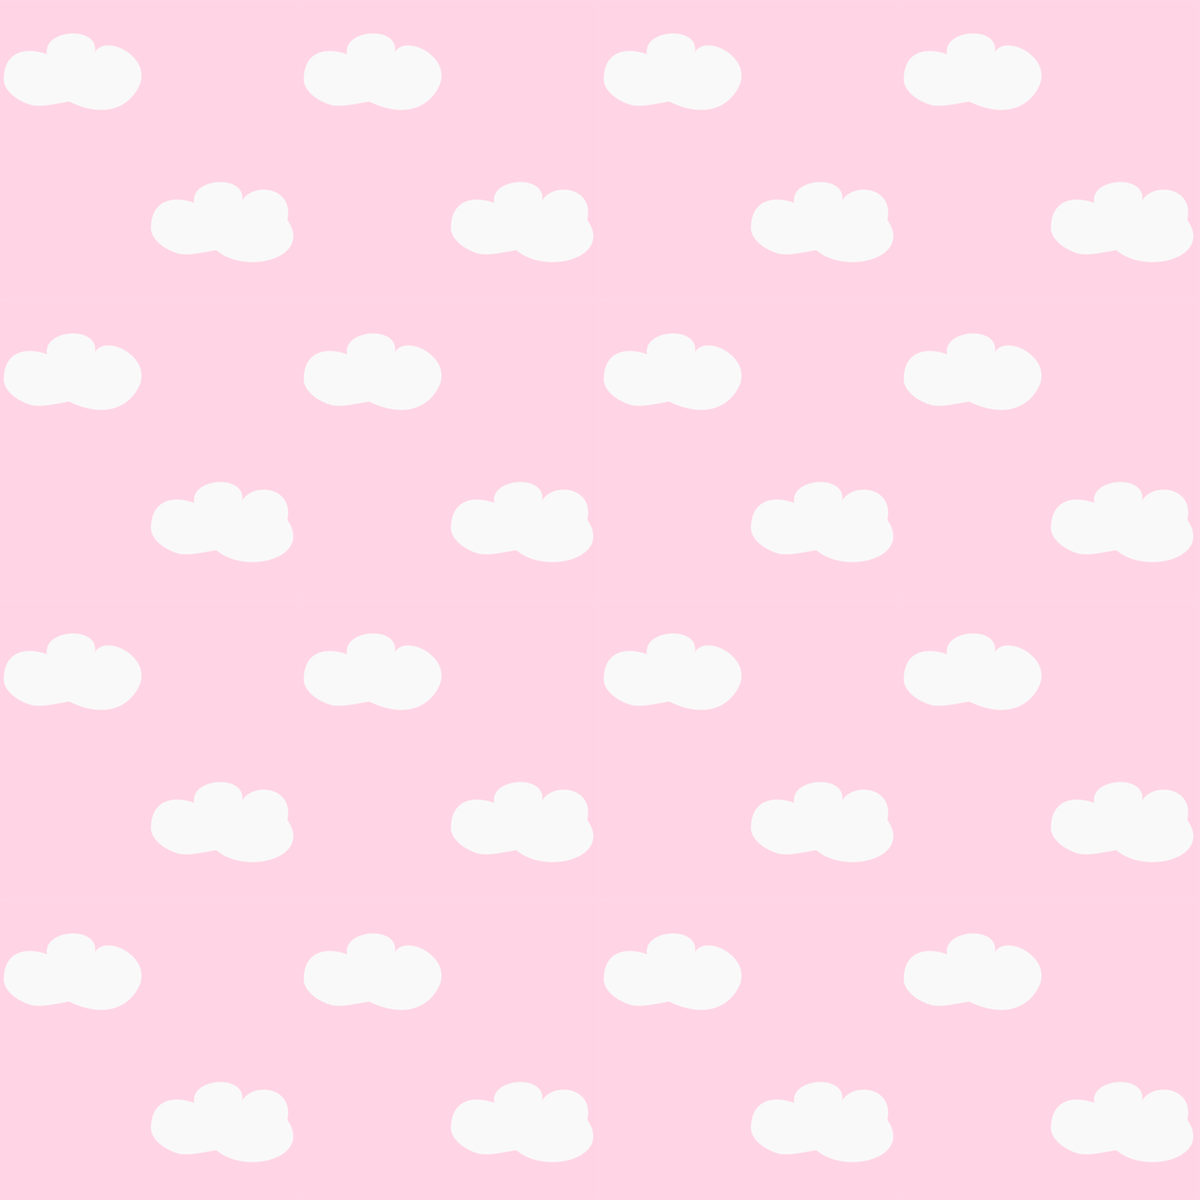 Pop Up Home Free Digital Fluffy Clouds Scrapbooking Papers